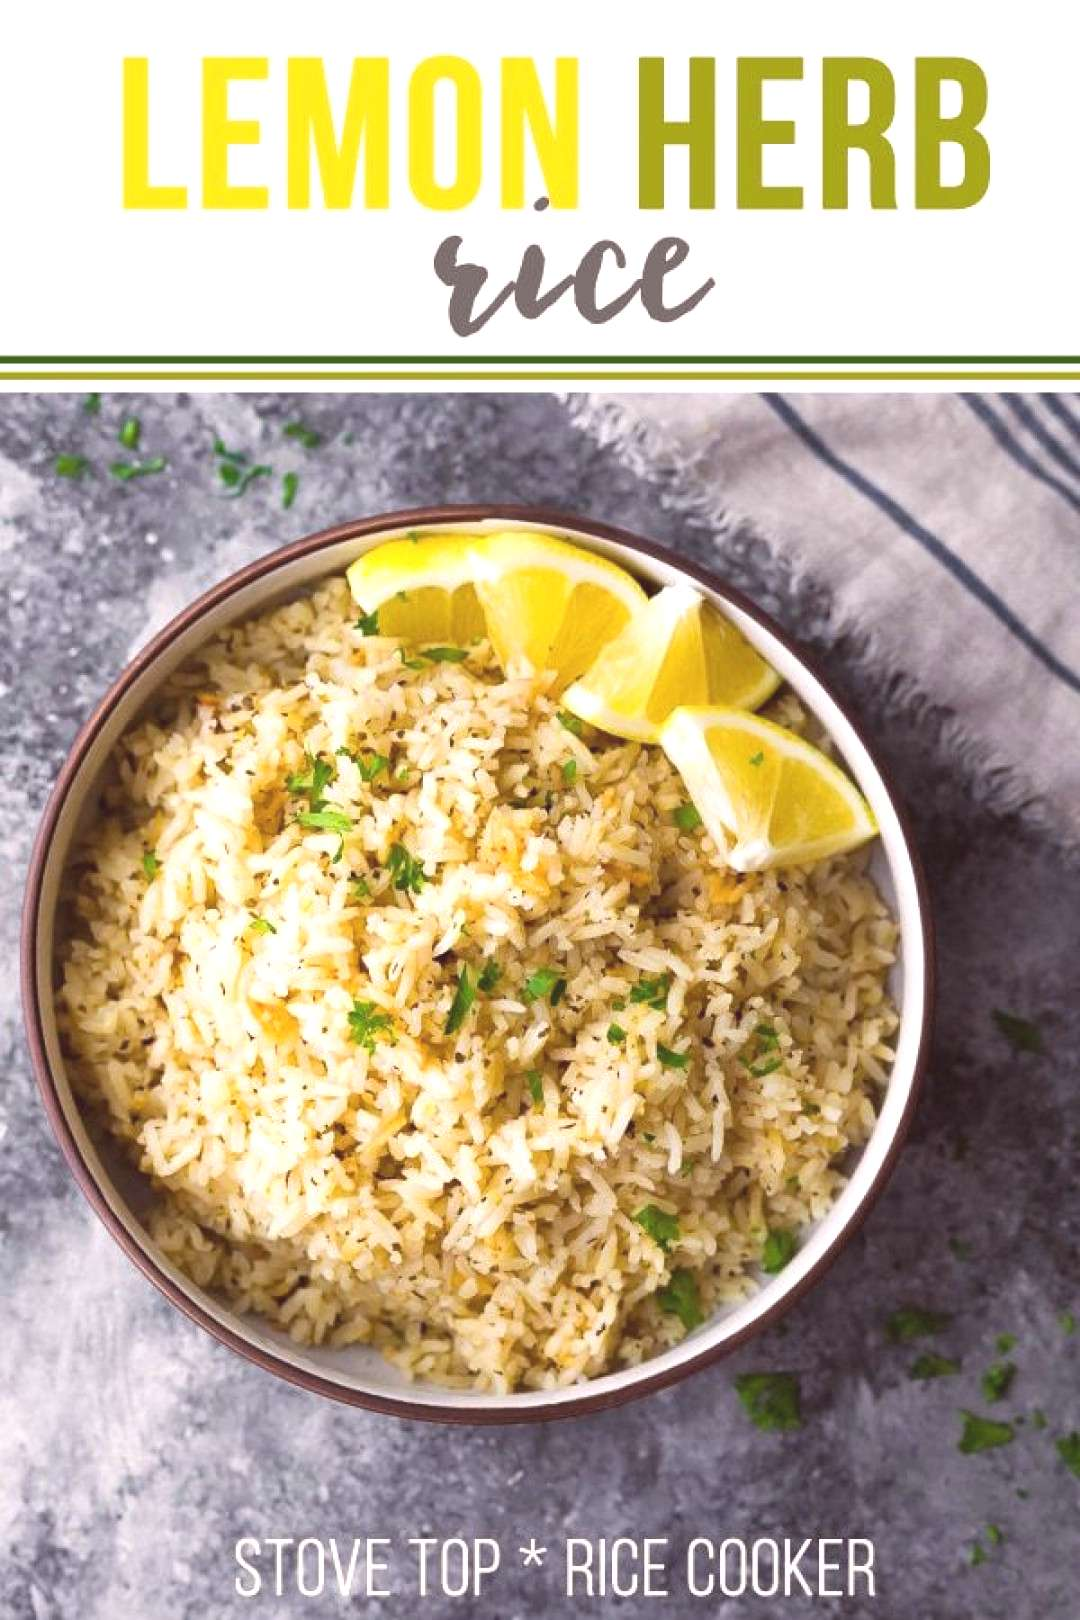 Herb lemon rice has delicious citrus and herb flavors and is easily prepped on the stove top or in